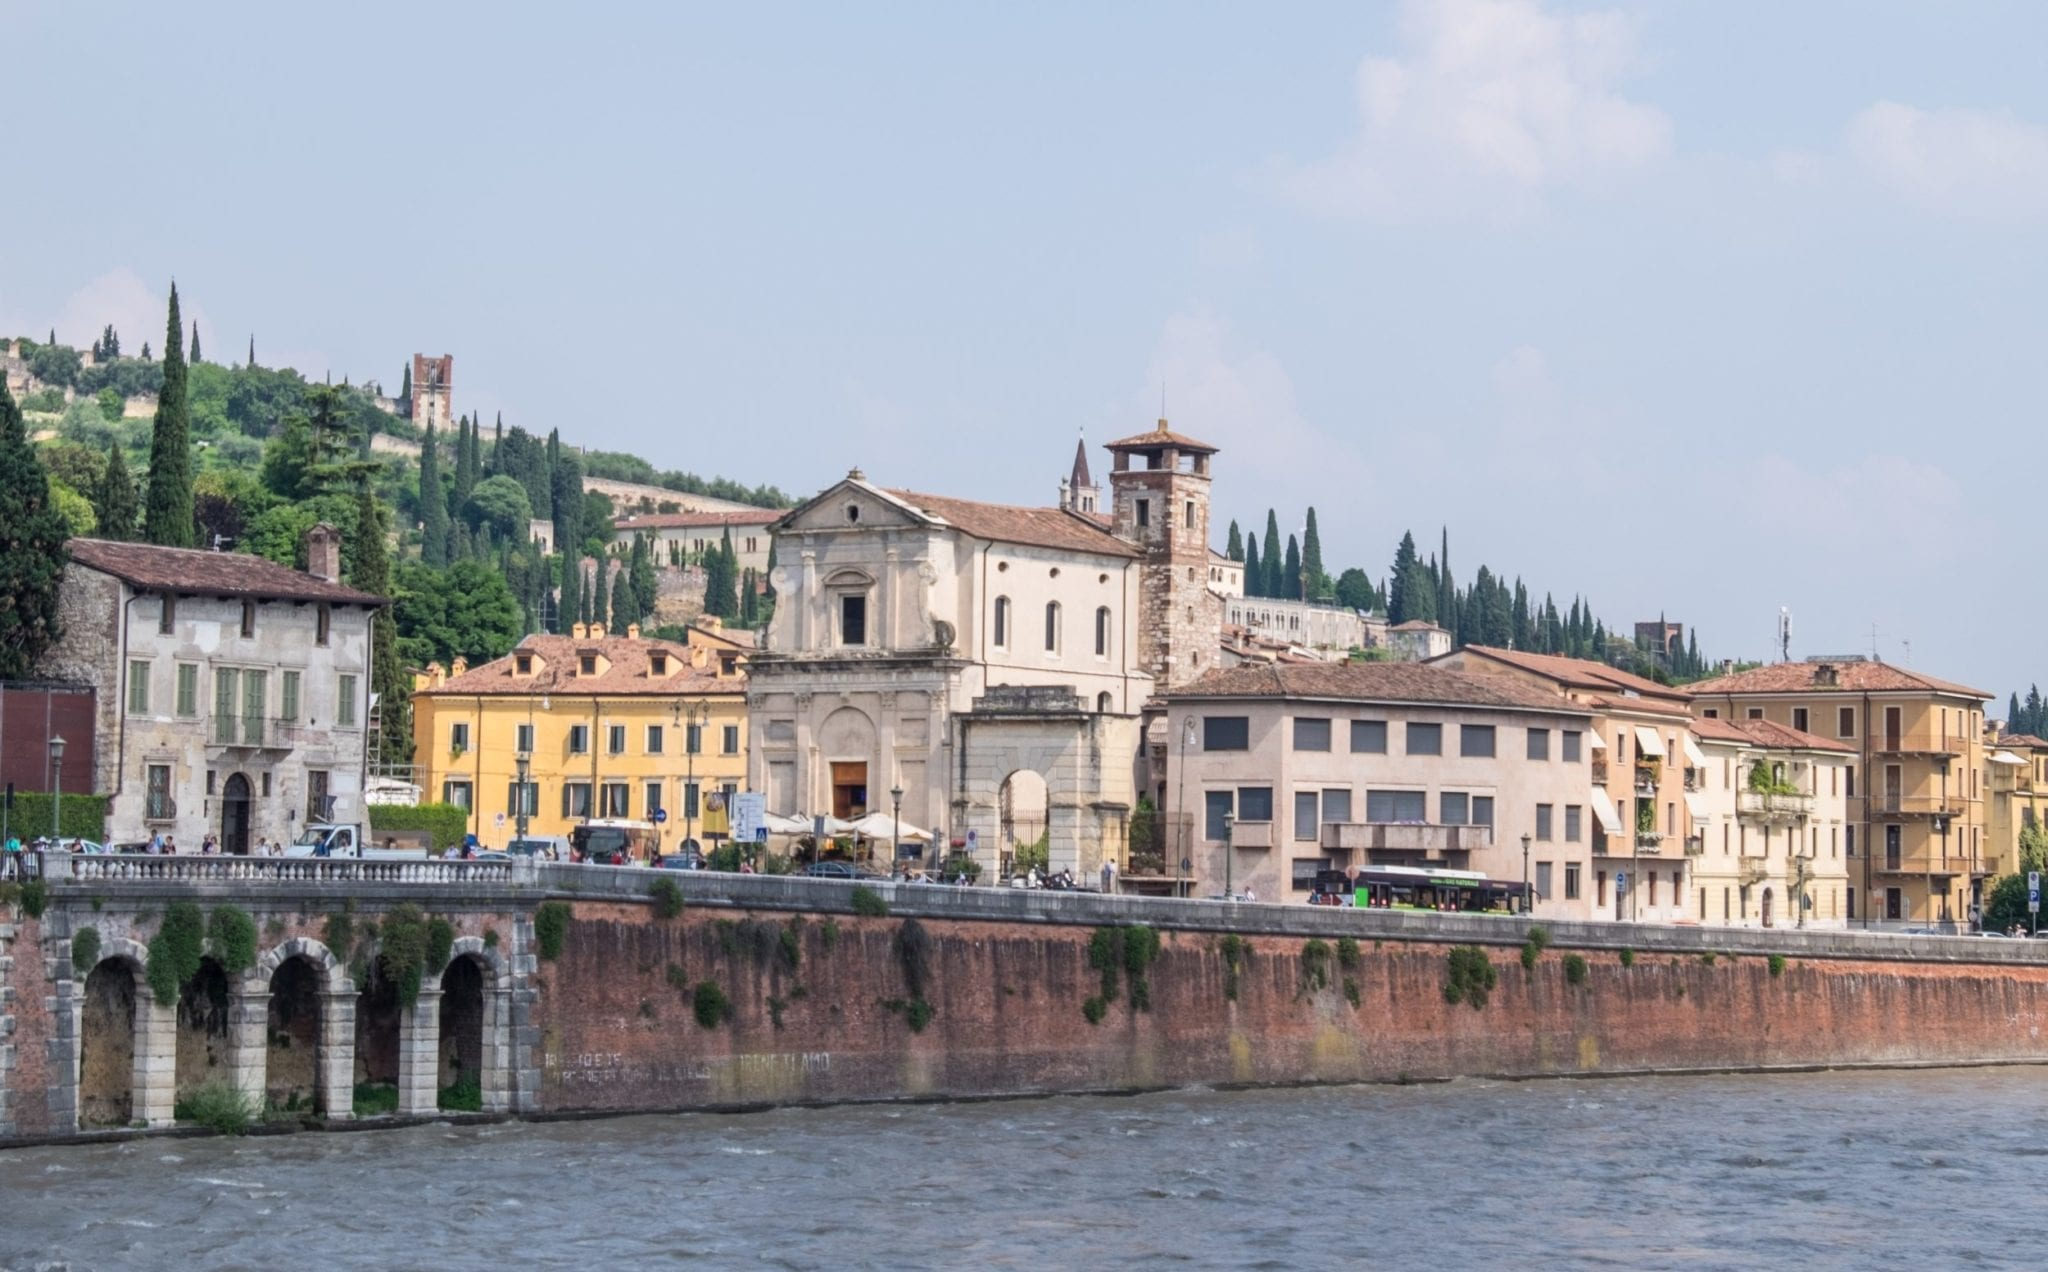 The riverbank in Verona, Italy, with cream-colored buildings and tall cypress trees.